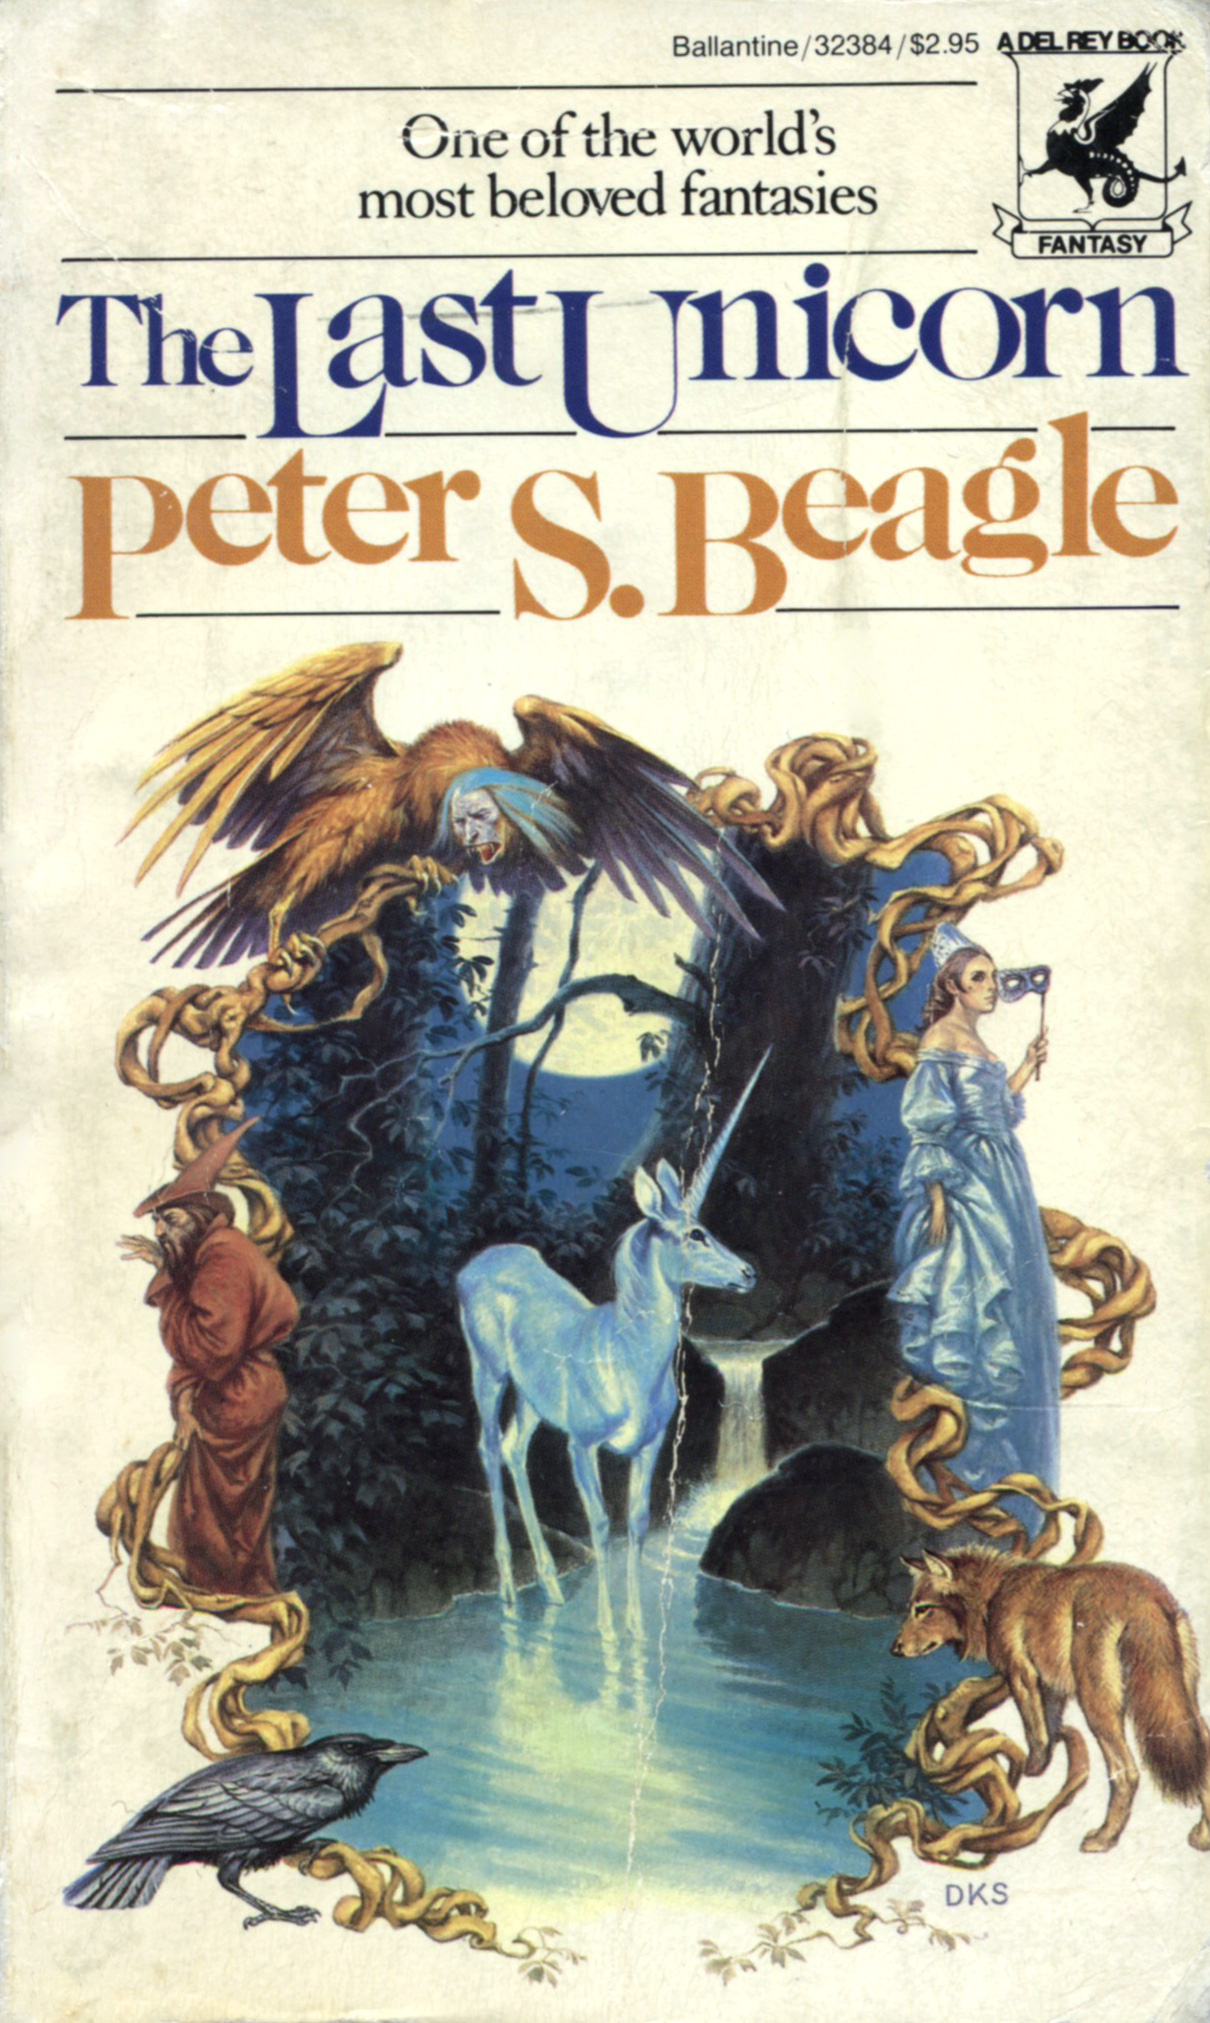 """The Last Unicorn"" by Peter S. Beagle."